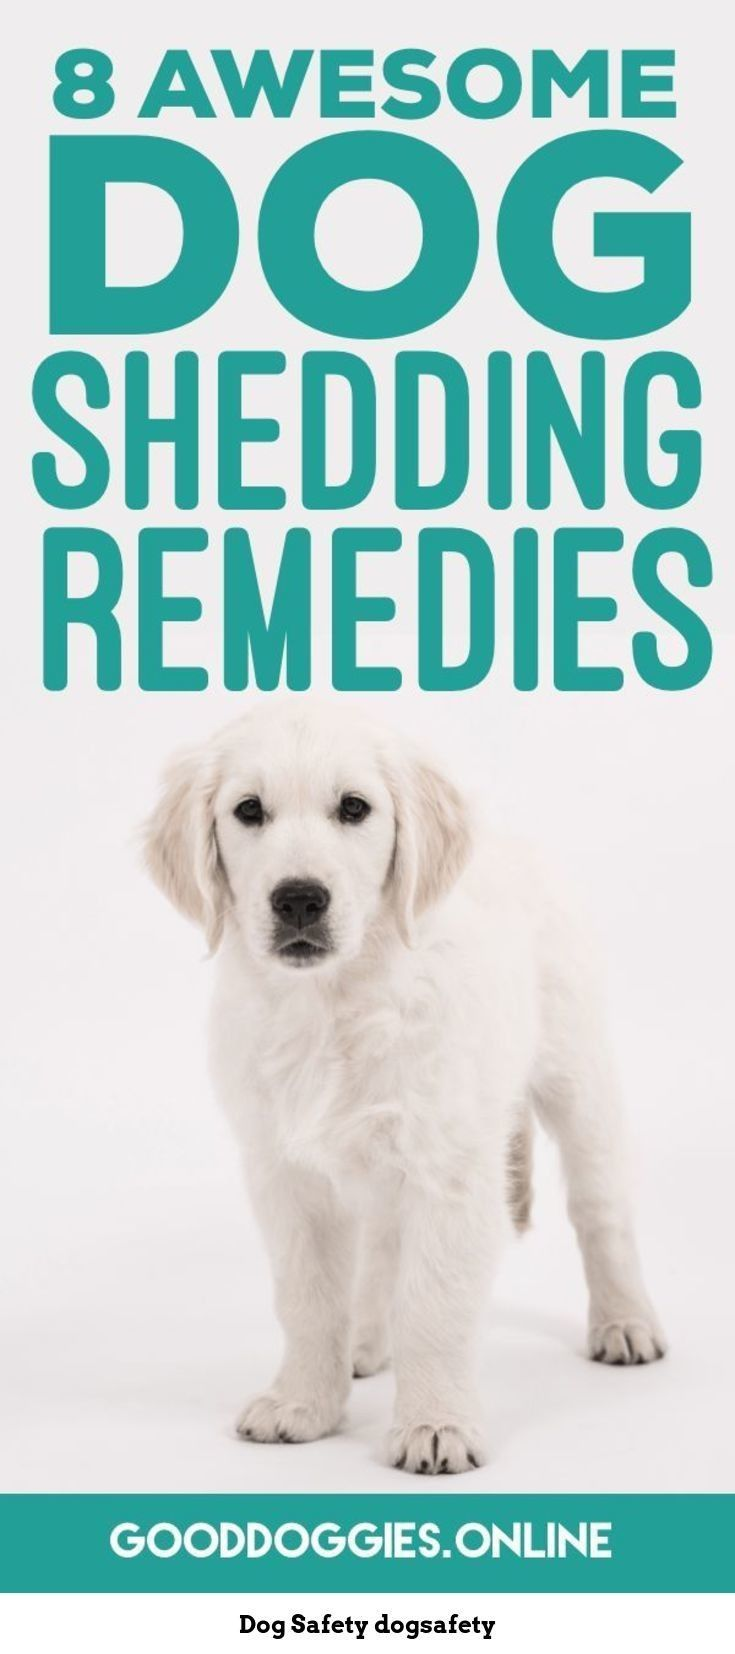 Dog Safety It S Getting Hot With Summer Almost Here Watch Out For These Signs Of A Dehydrated Dog Dog Safety Dog Shedding Remedies Dog Shedding Dog Remedies